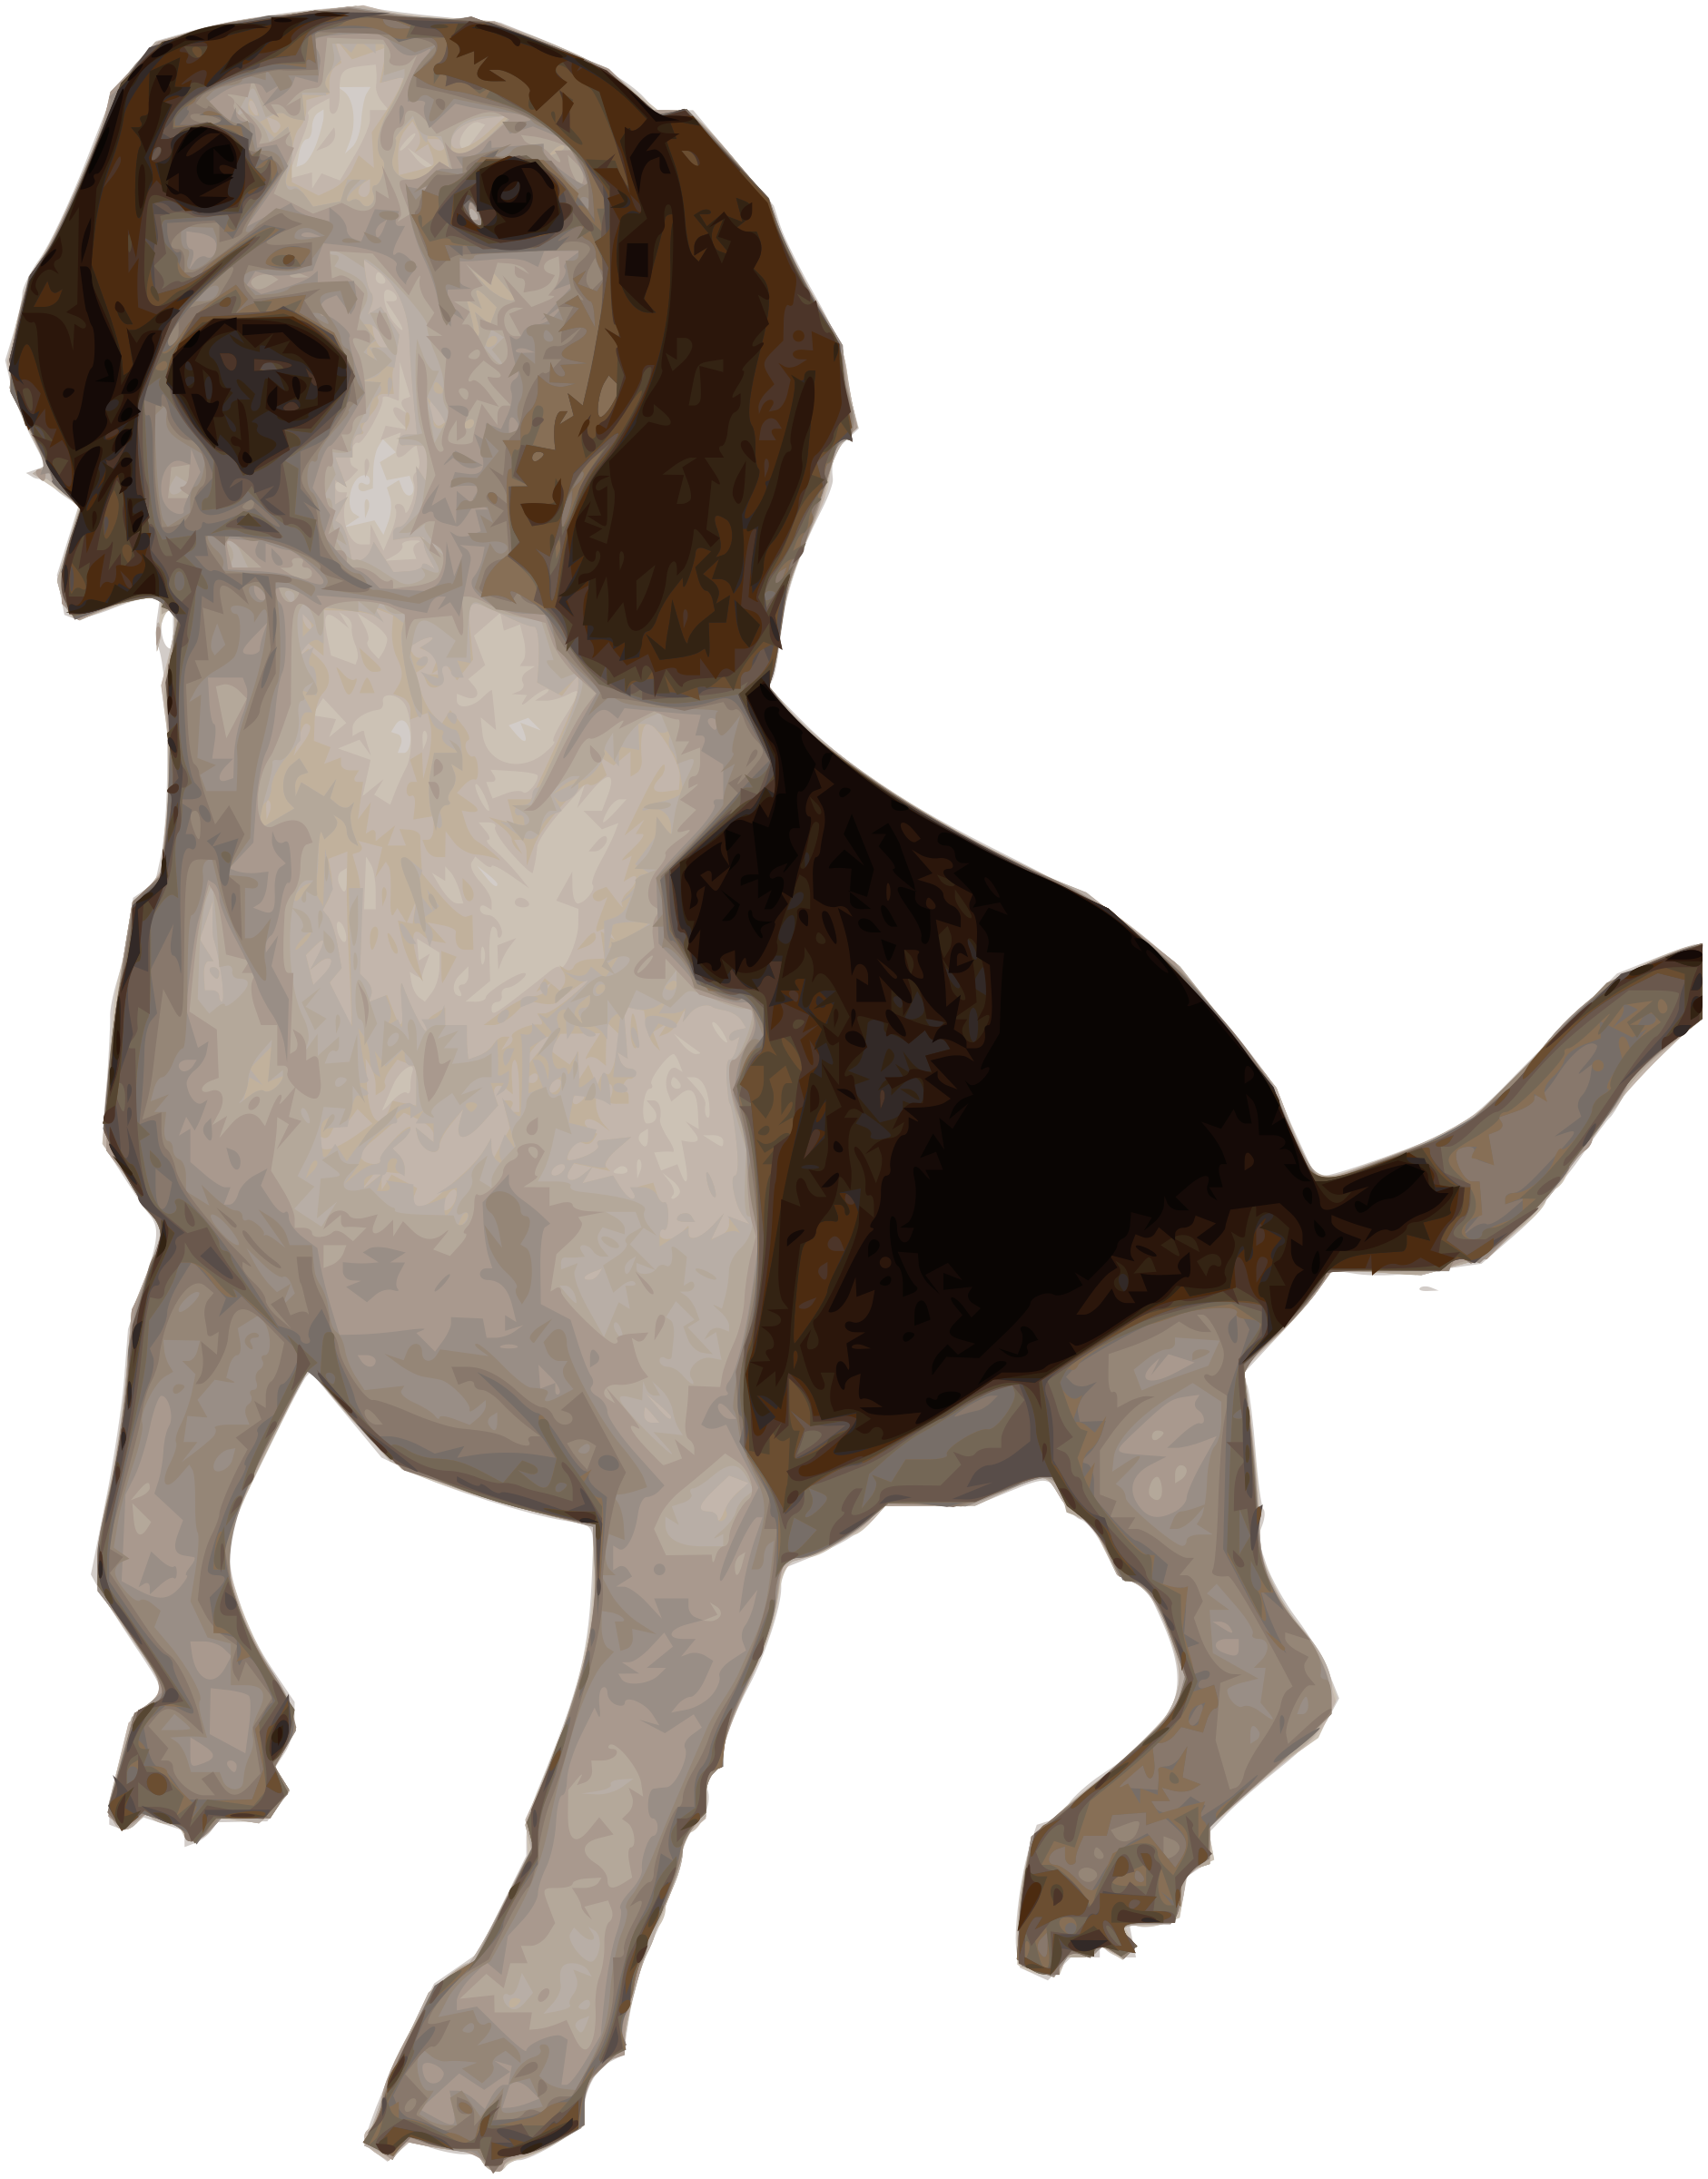 Beagle dog clipart graphic freeuse download Clipart - Beagle Medium Version graphic freeuse download